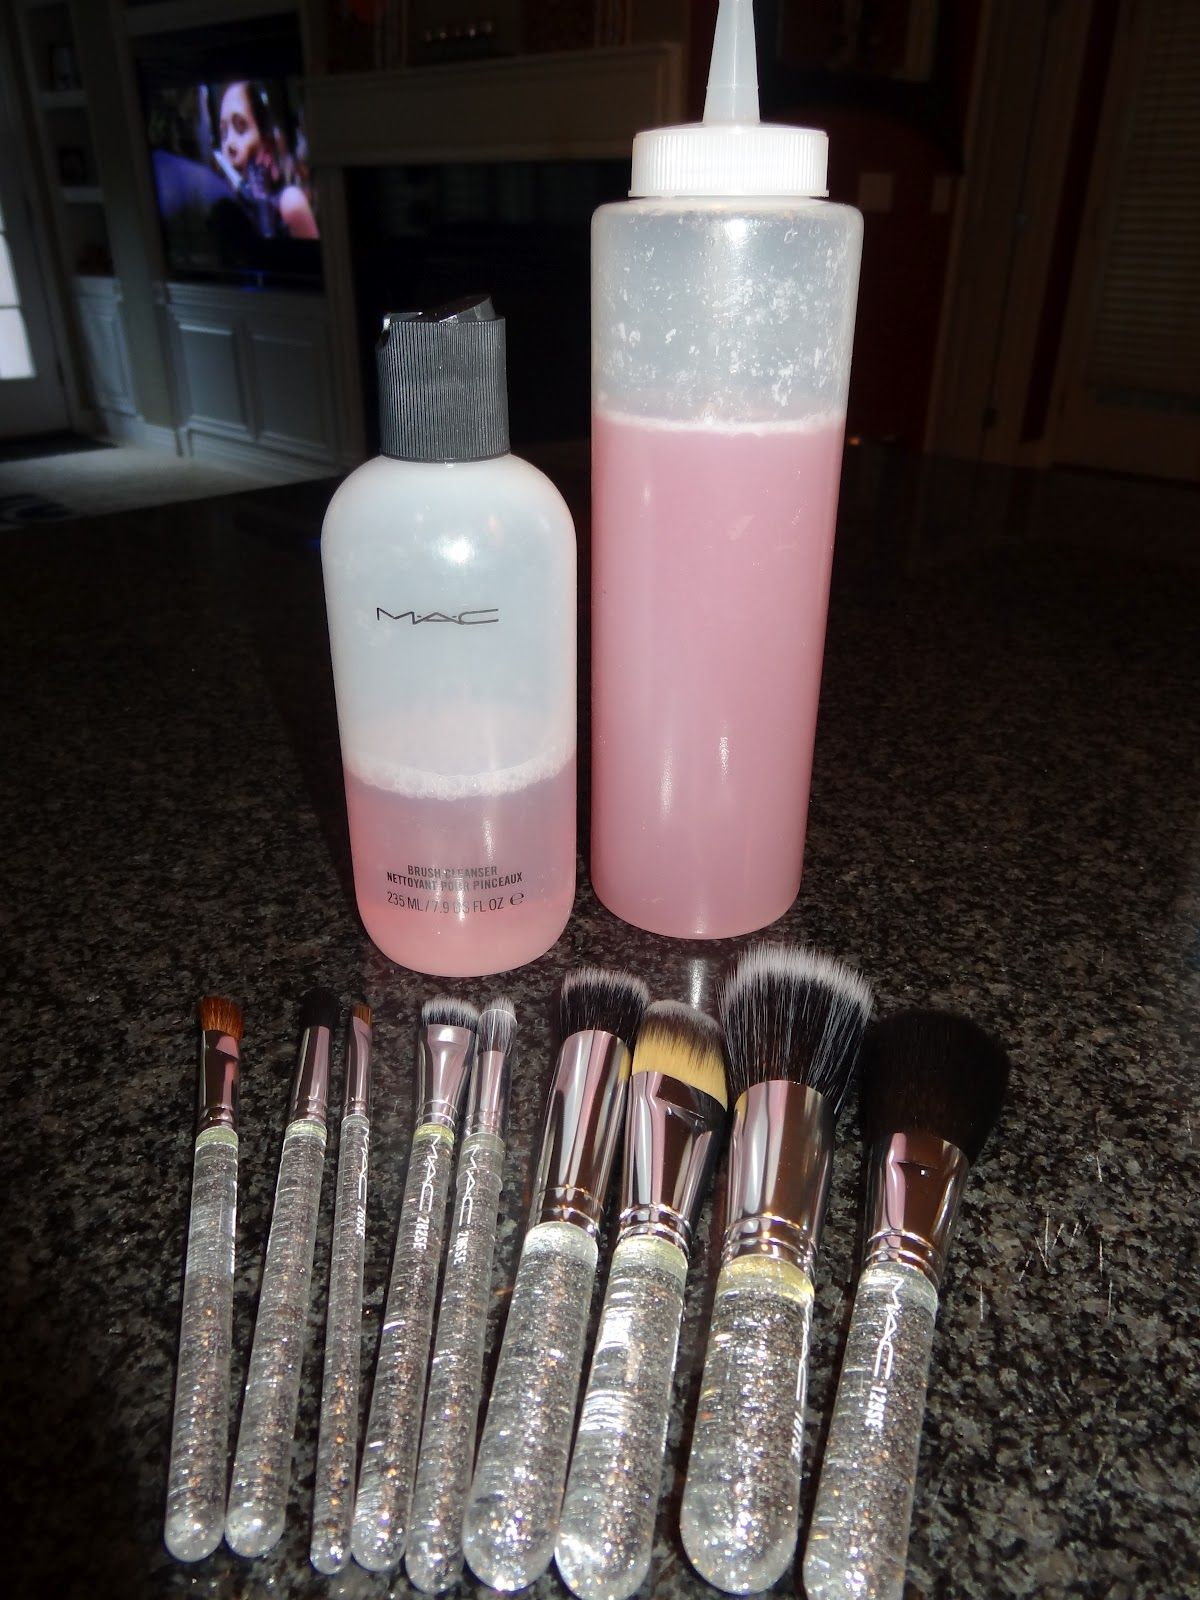 MAC Makeup brush cleaner Knock off 1 cup distilled water